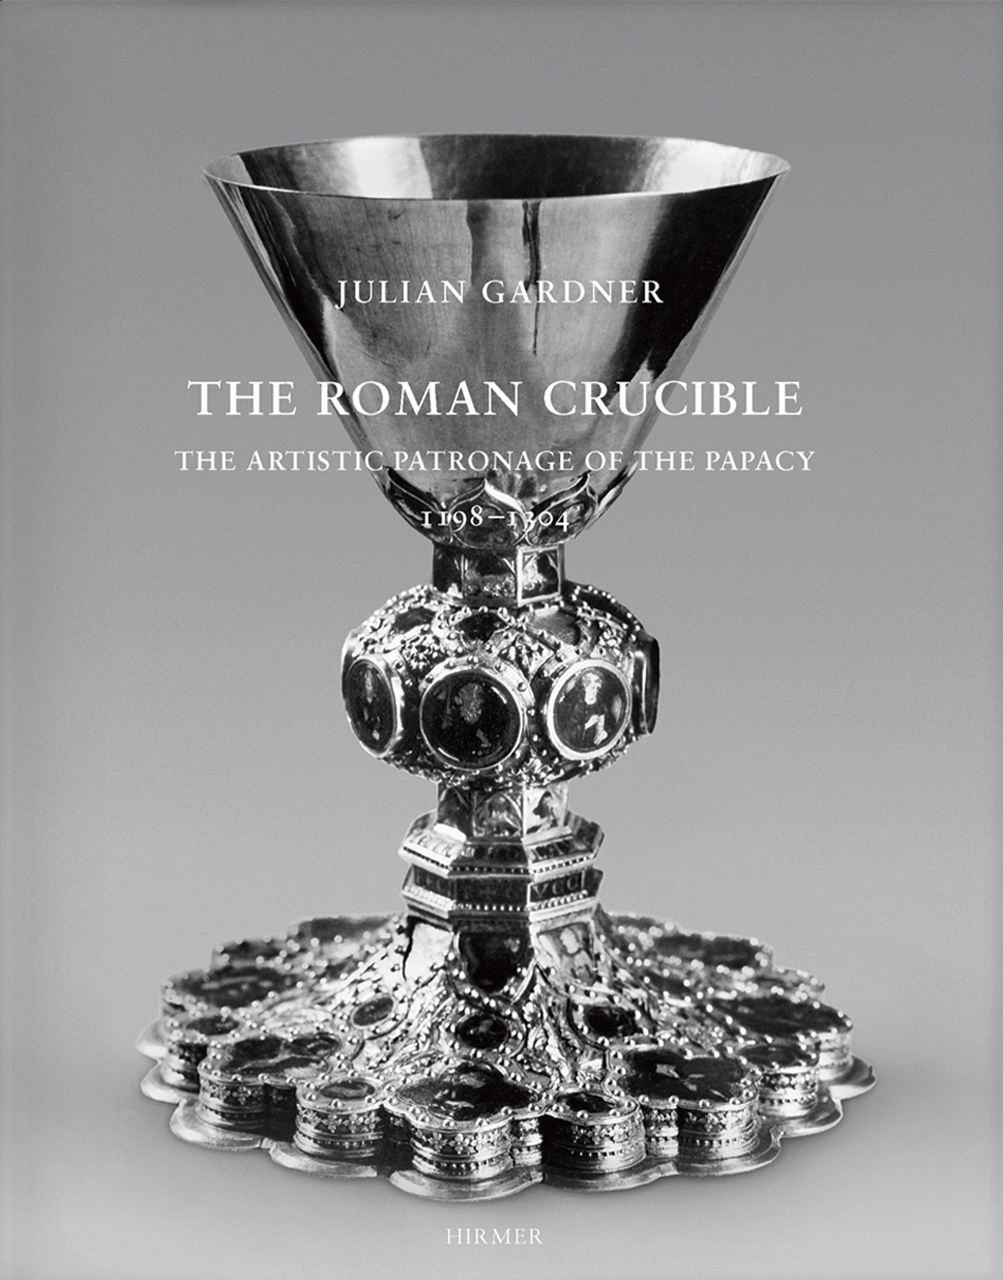 The Roman Crucible: The Artistic Patronage of the Papacy 1198 - 1304